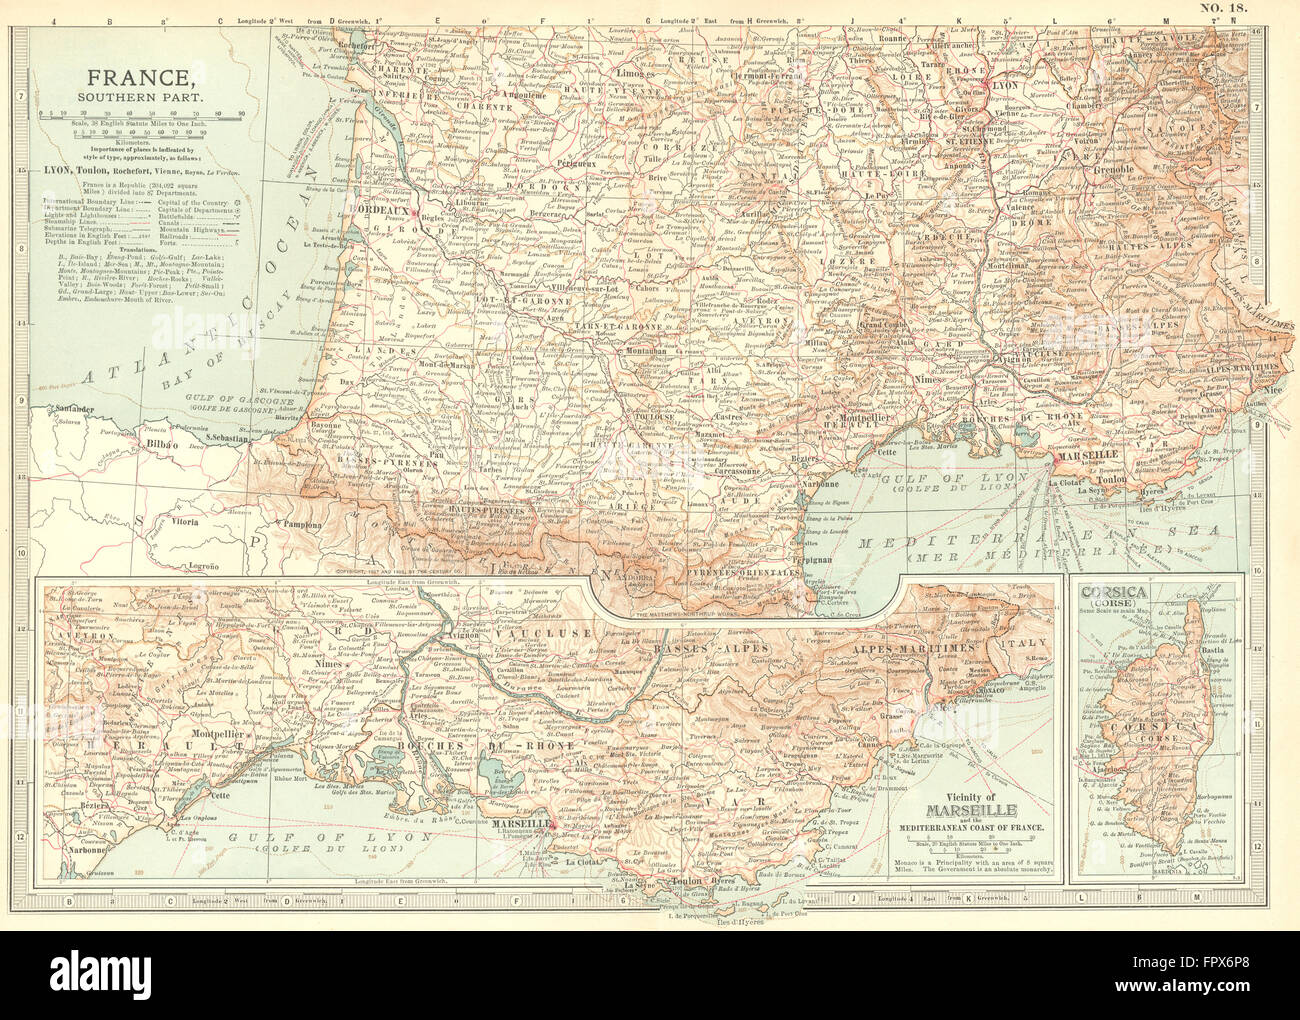 Map Of France South.France South 1903 Antique Map Stock Photo 100150352 Alamy